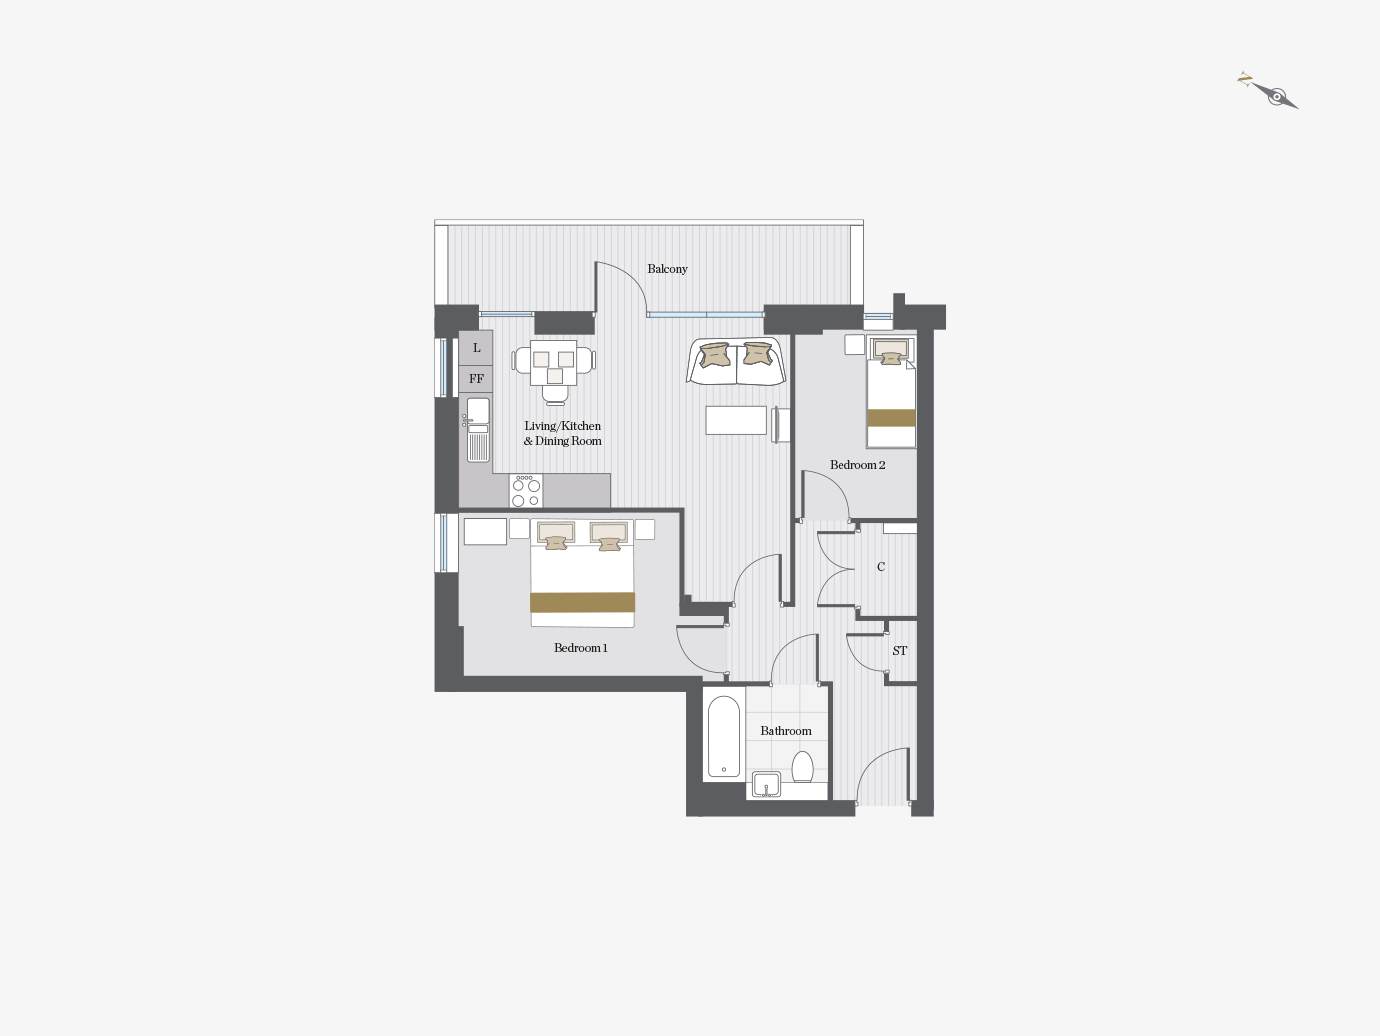 Floorplan for S8/01 at City Wharf, Eighth